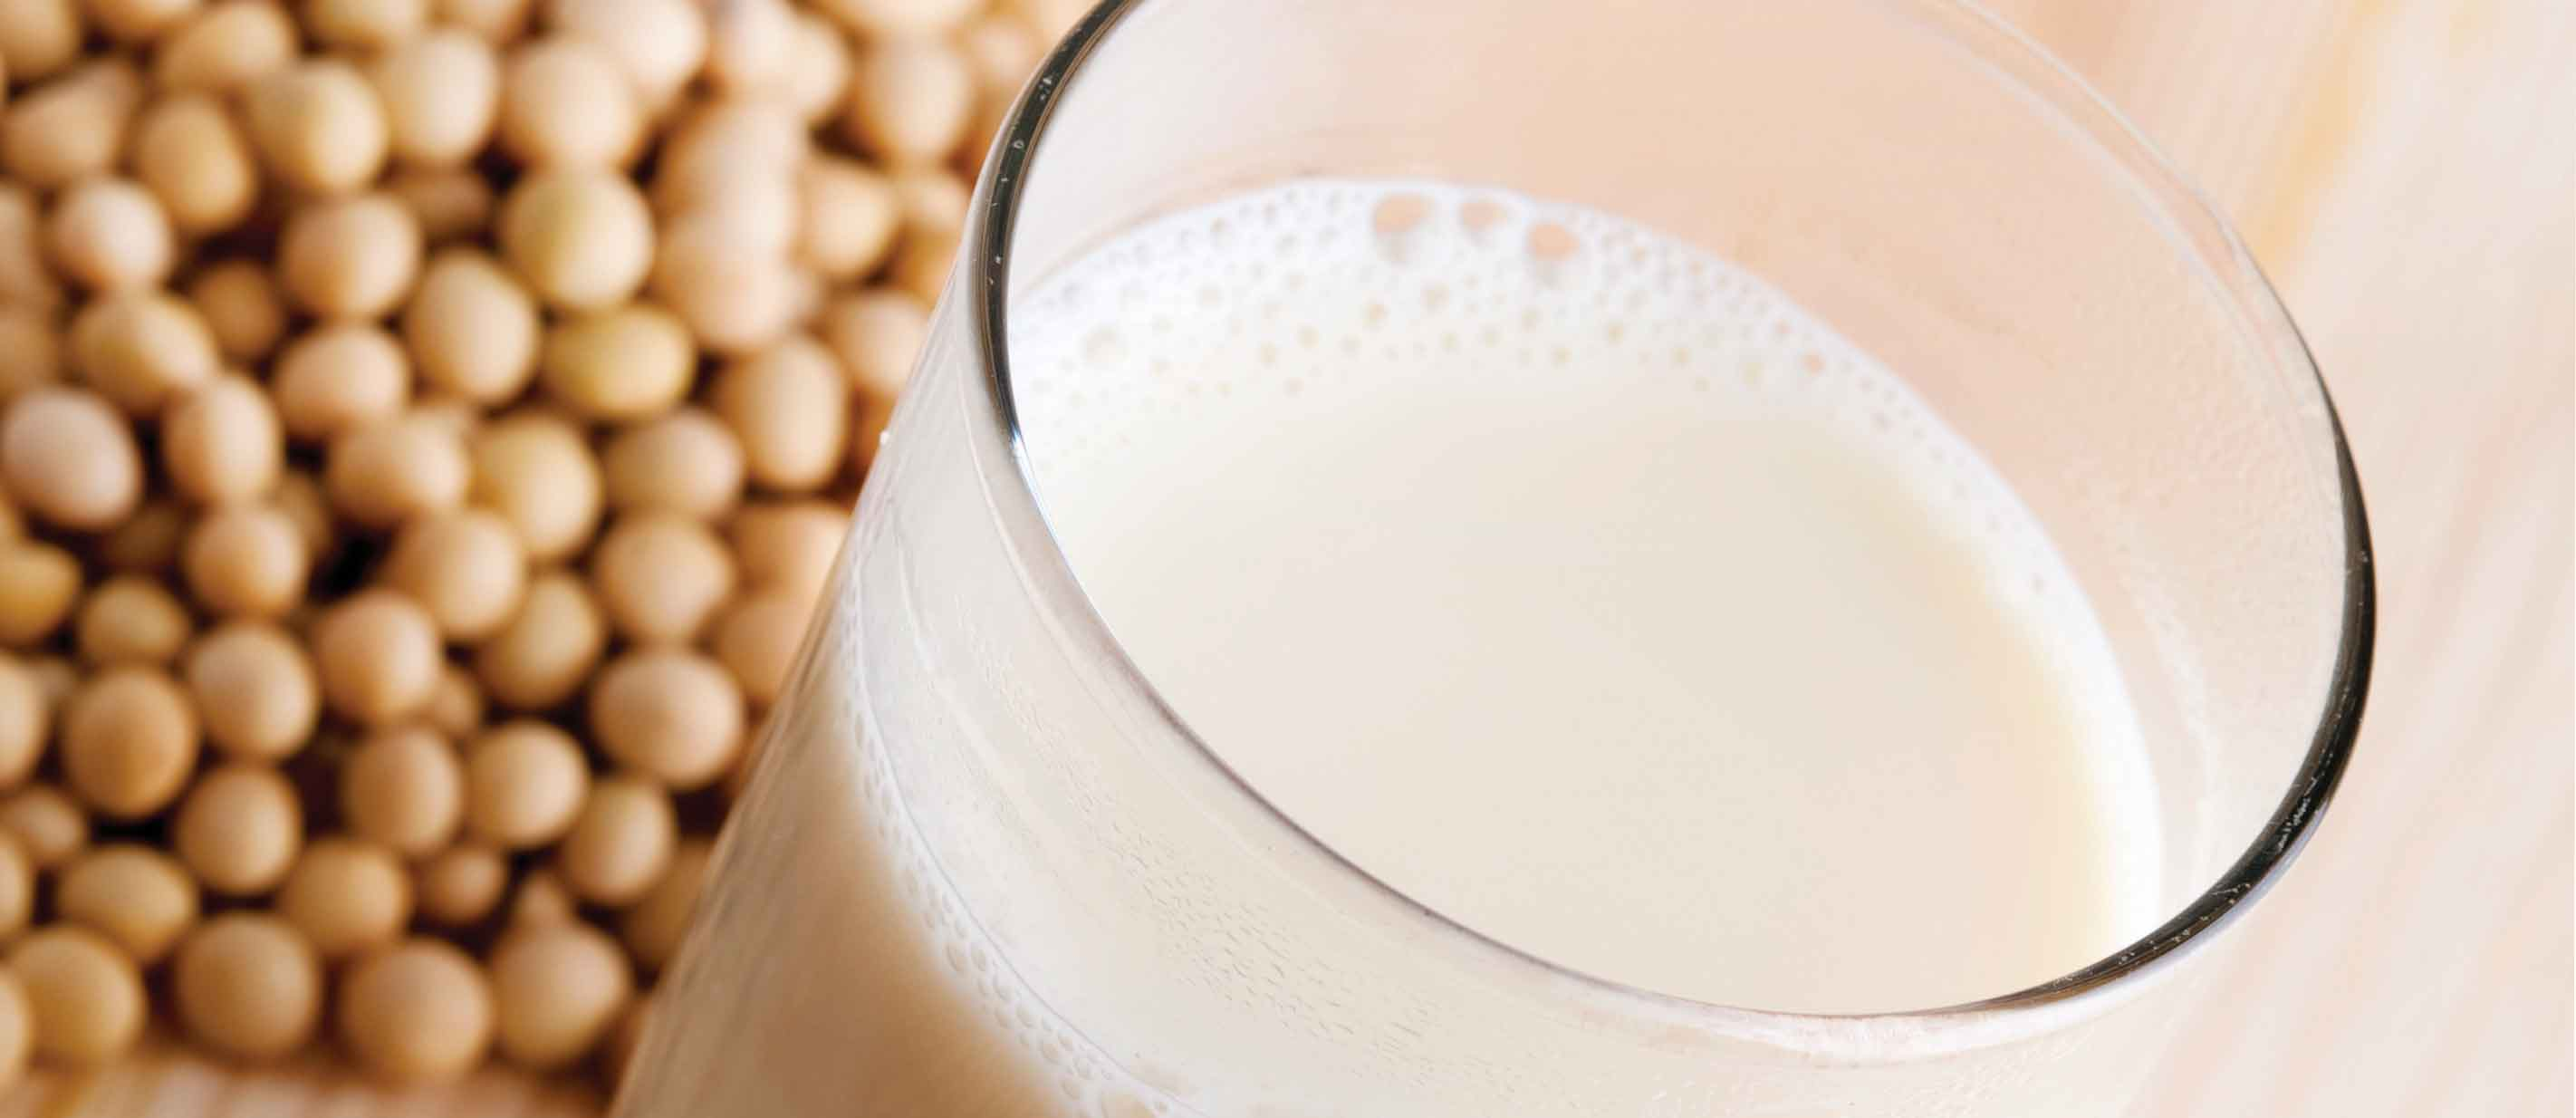 Milk allergy symptoms and causes - Nutrition Myths | Dairy free ...